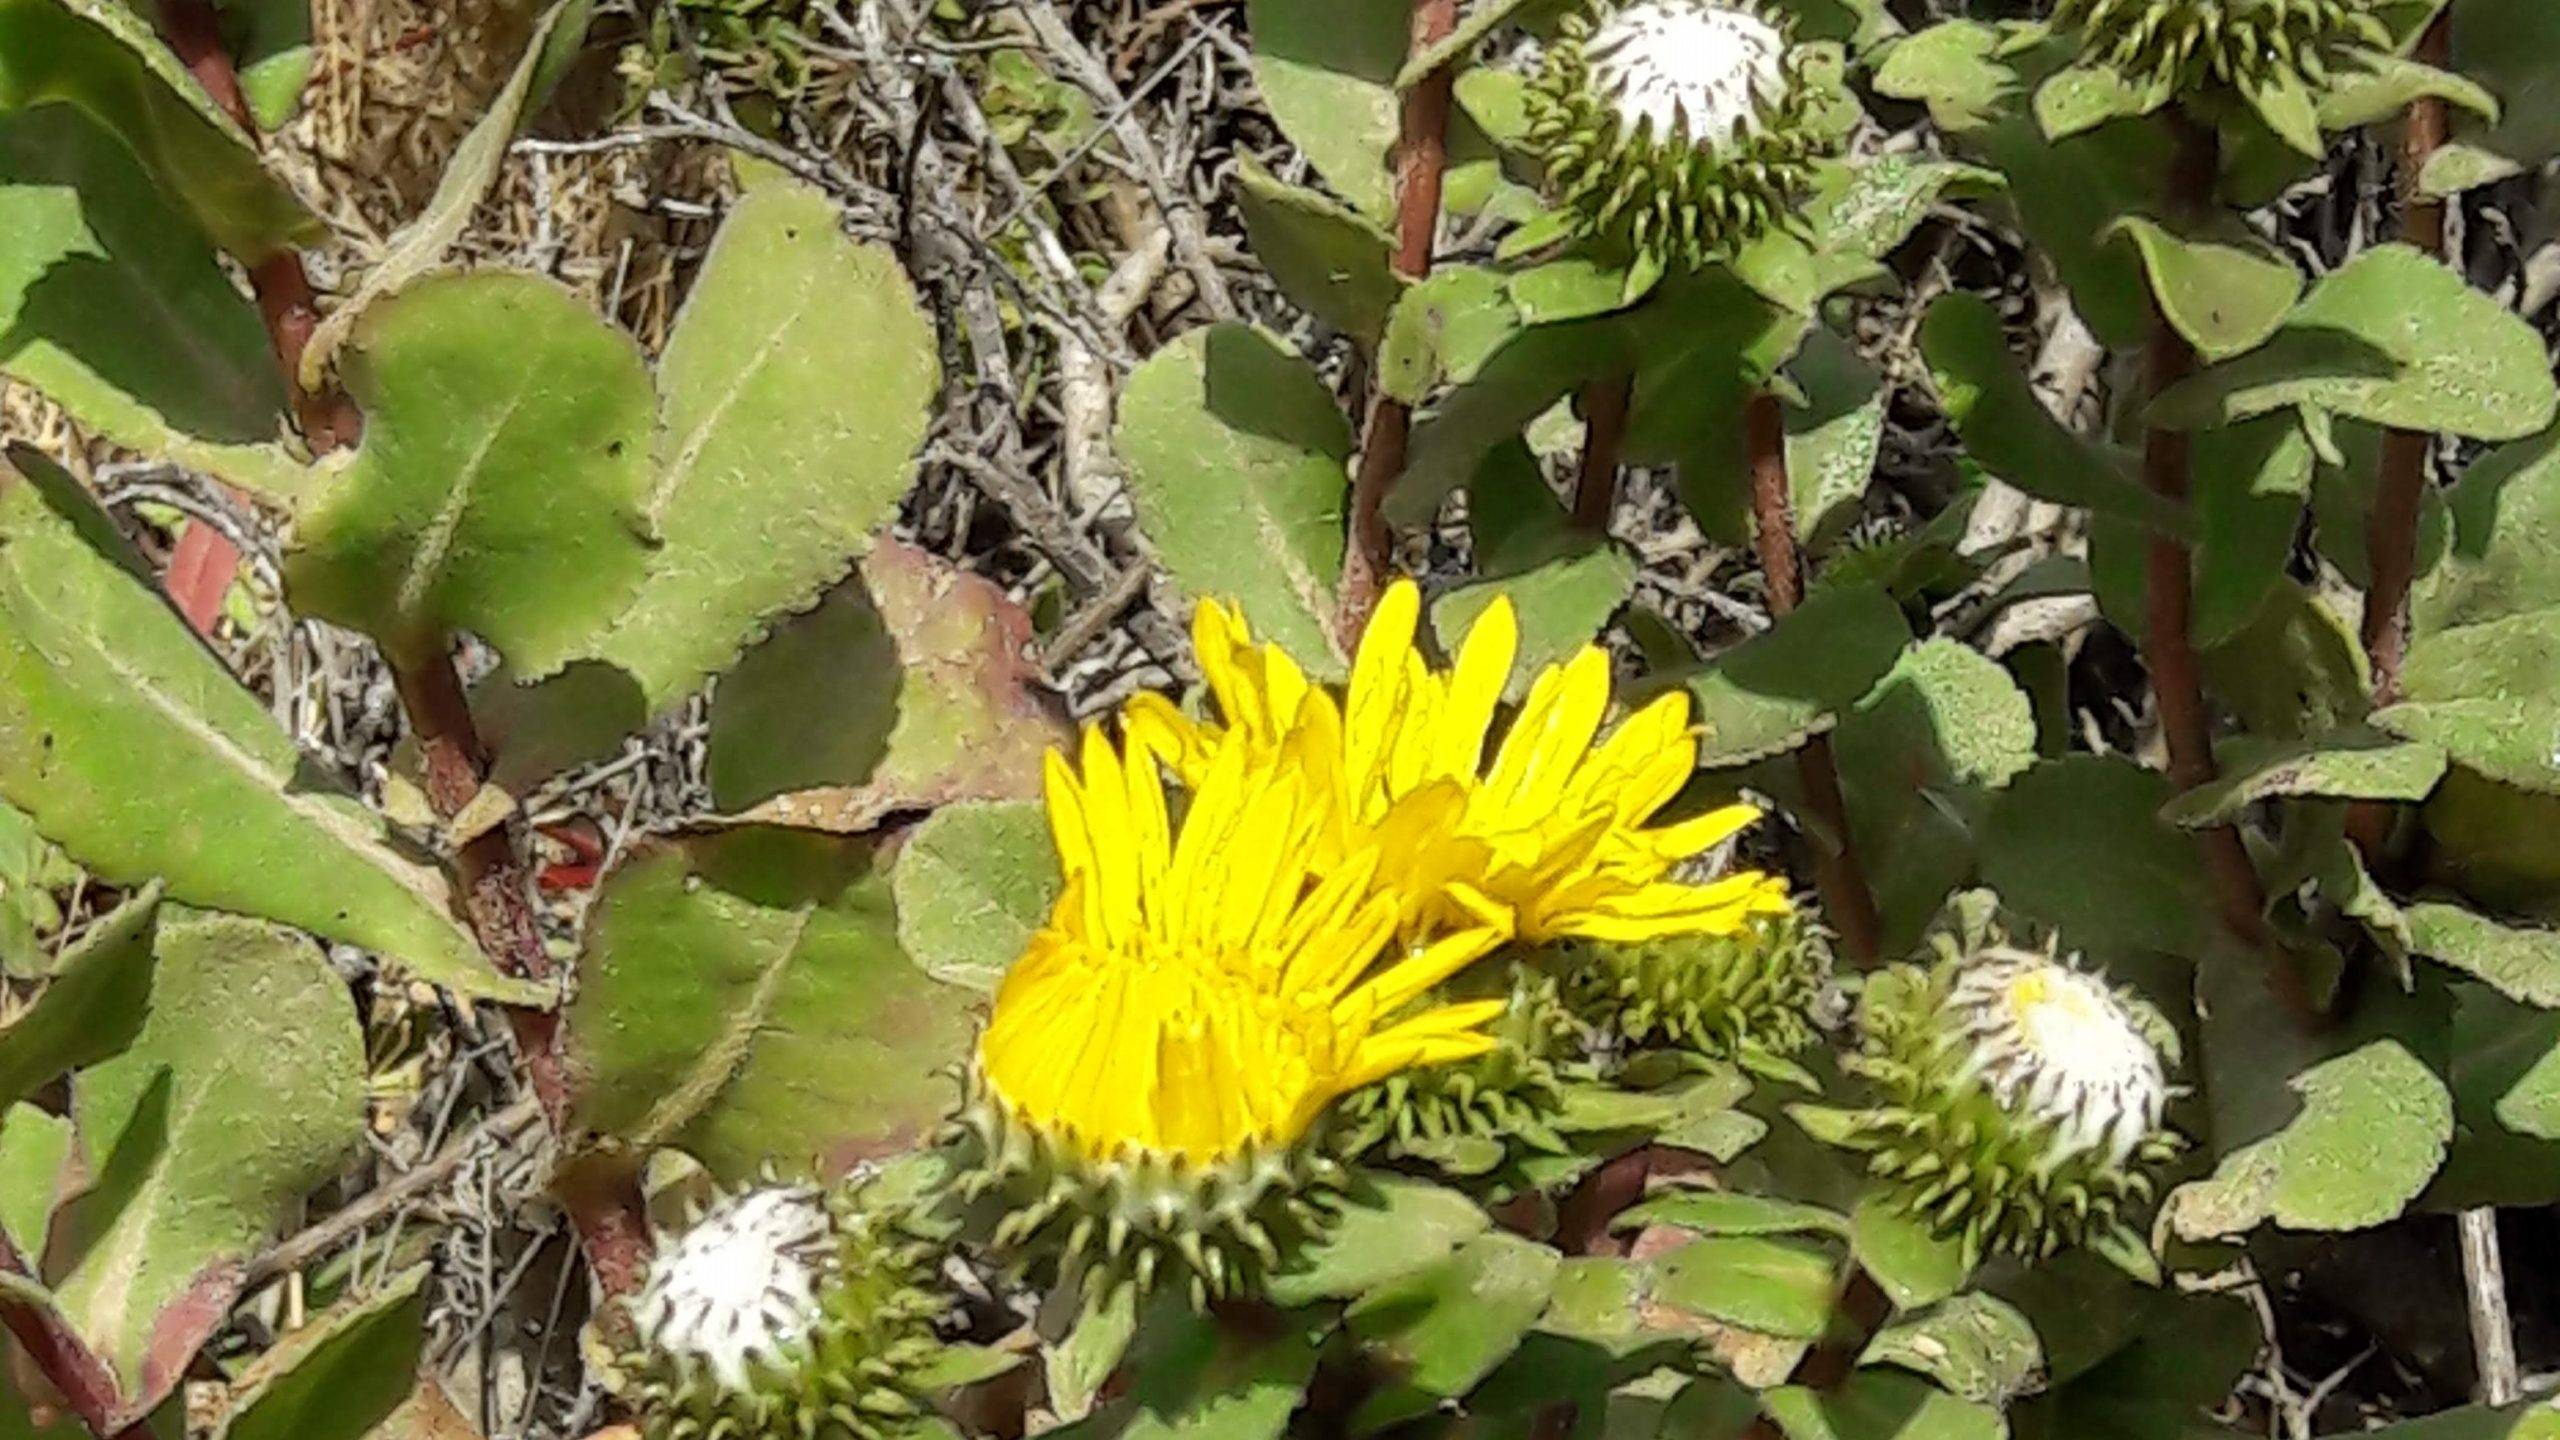 Gumweed yellow blooms and white resin.